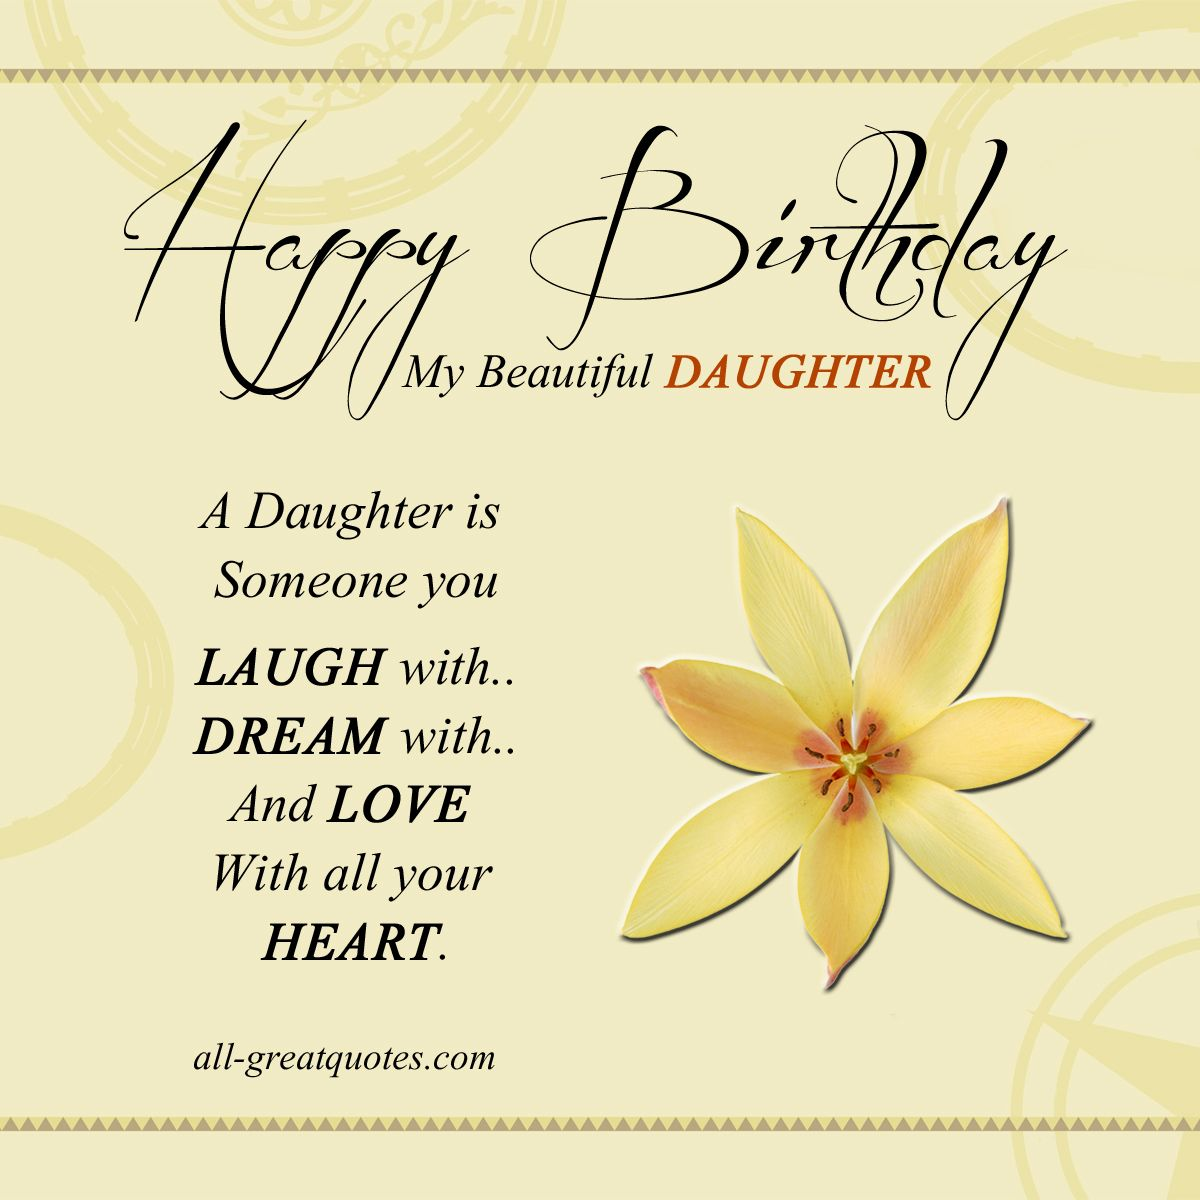 25th Birthday Quotes For Myself: Happy Birthday To My Beautiful Daughter Animated